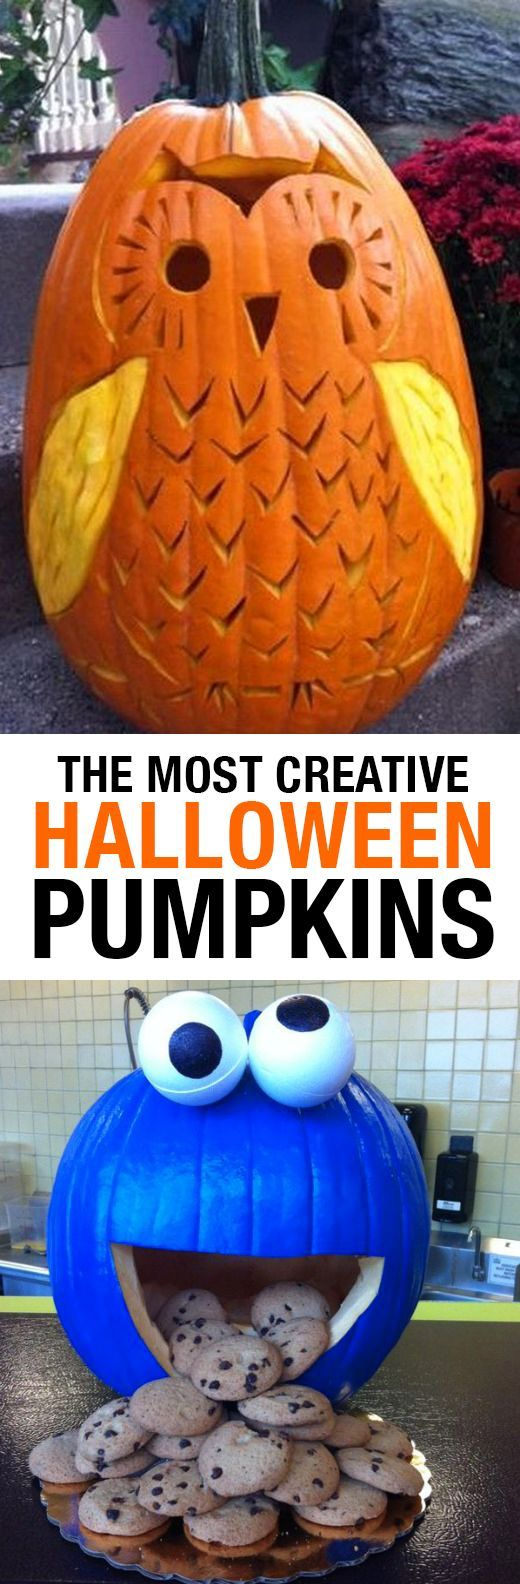 the most creative halloween pumpkins ever seen! | disney cookies